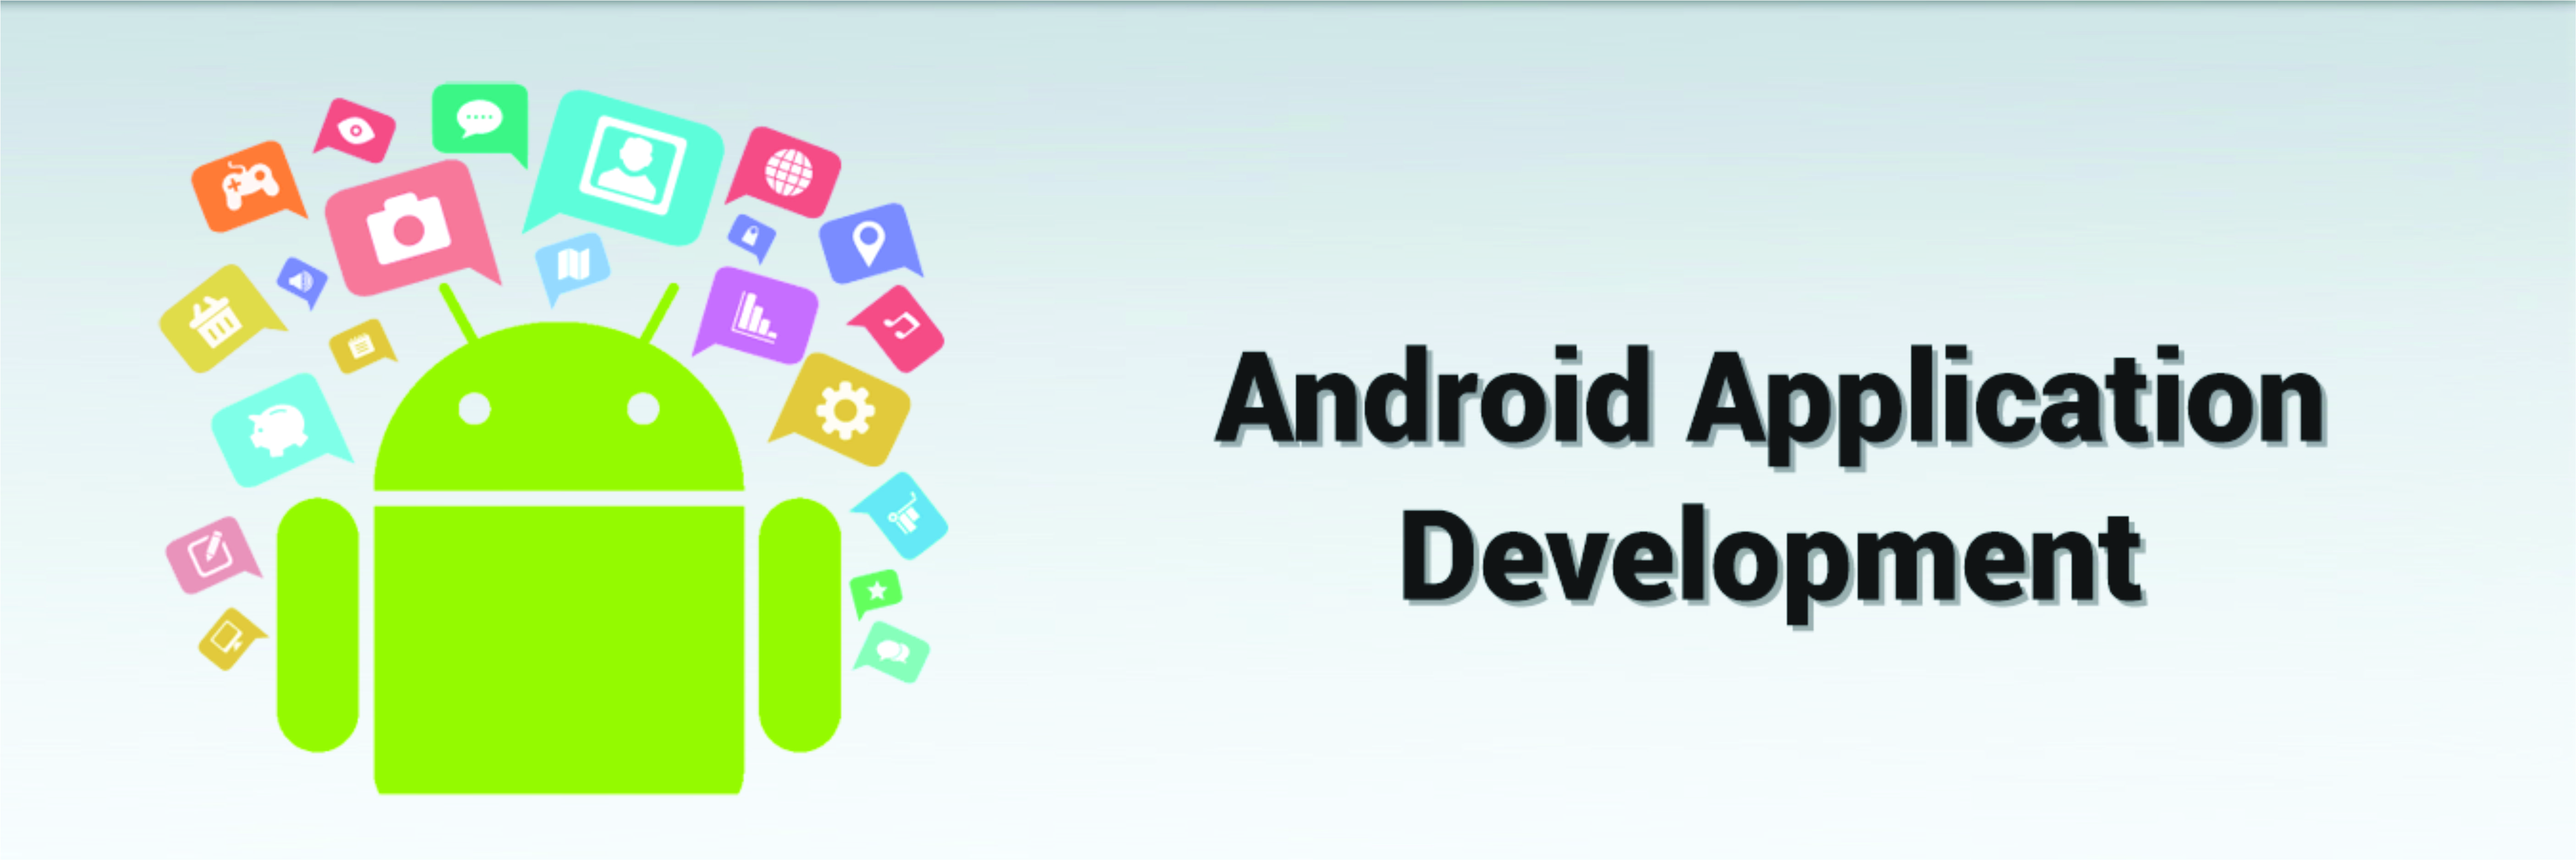 Android application development Training in Nepal, Best Android